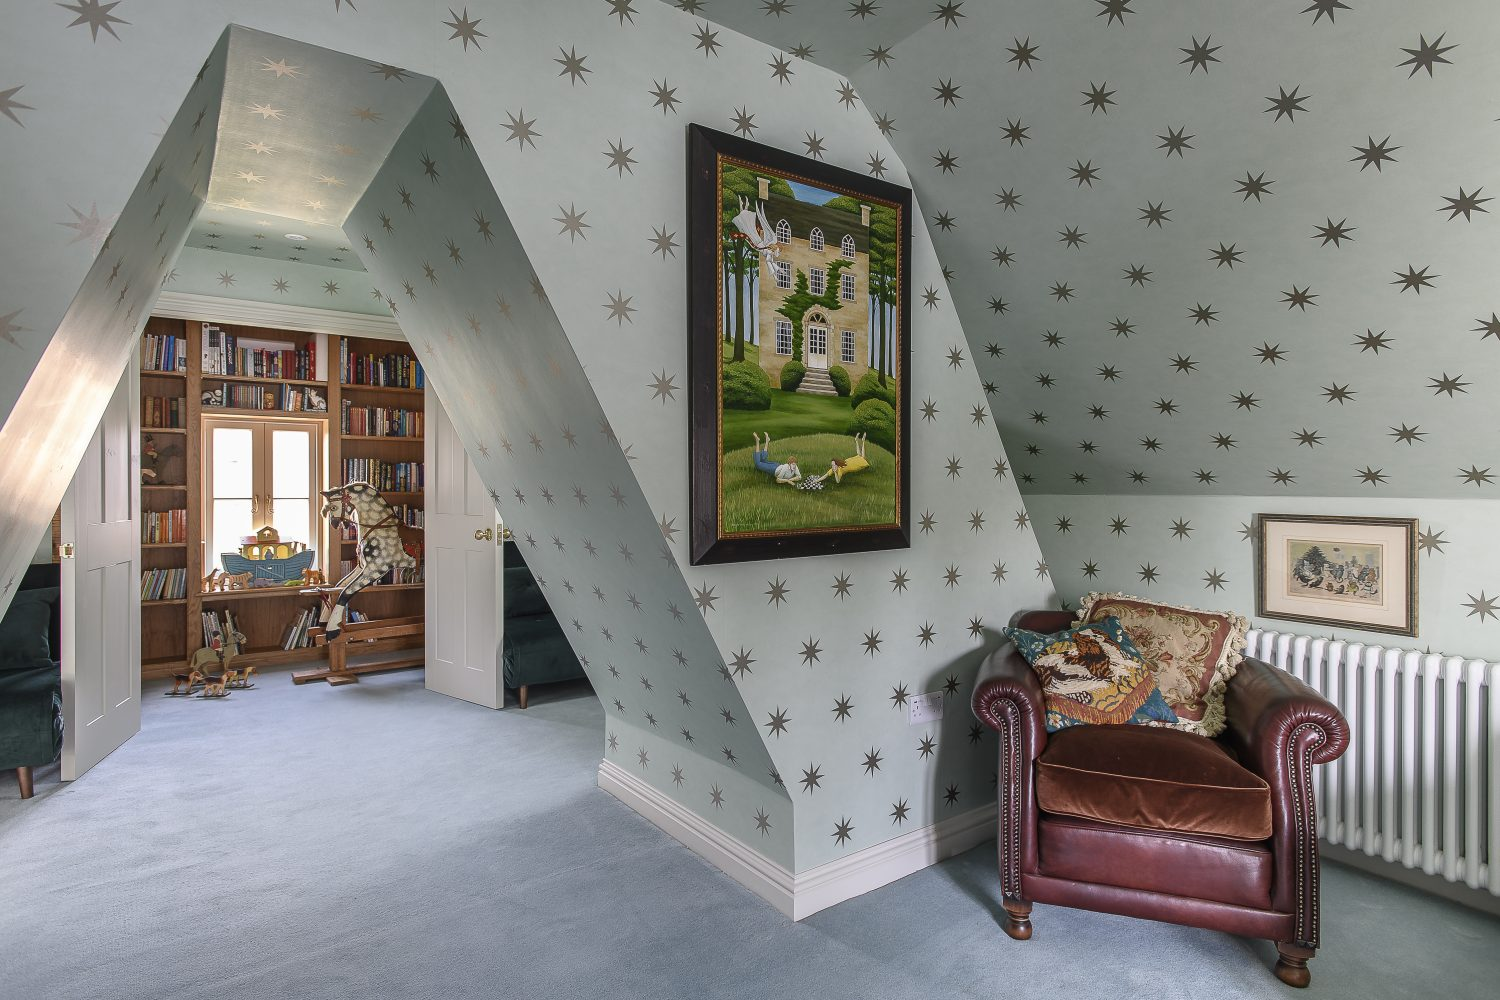 The attic is a space which has been designed with the couple's grandchildren in mind. This airy, dreamy space, tucked under the eaves, is papered in stars